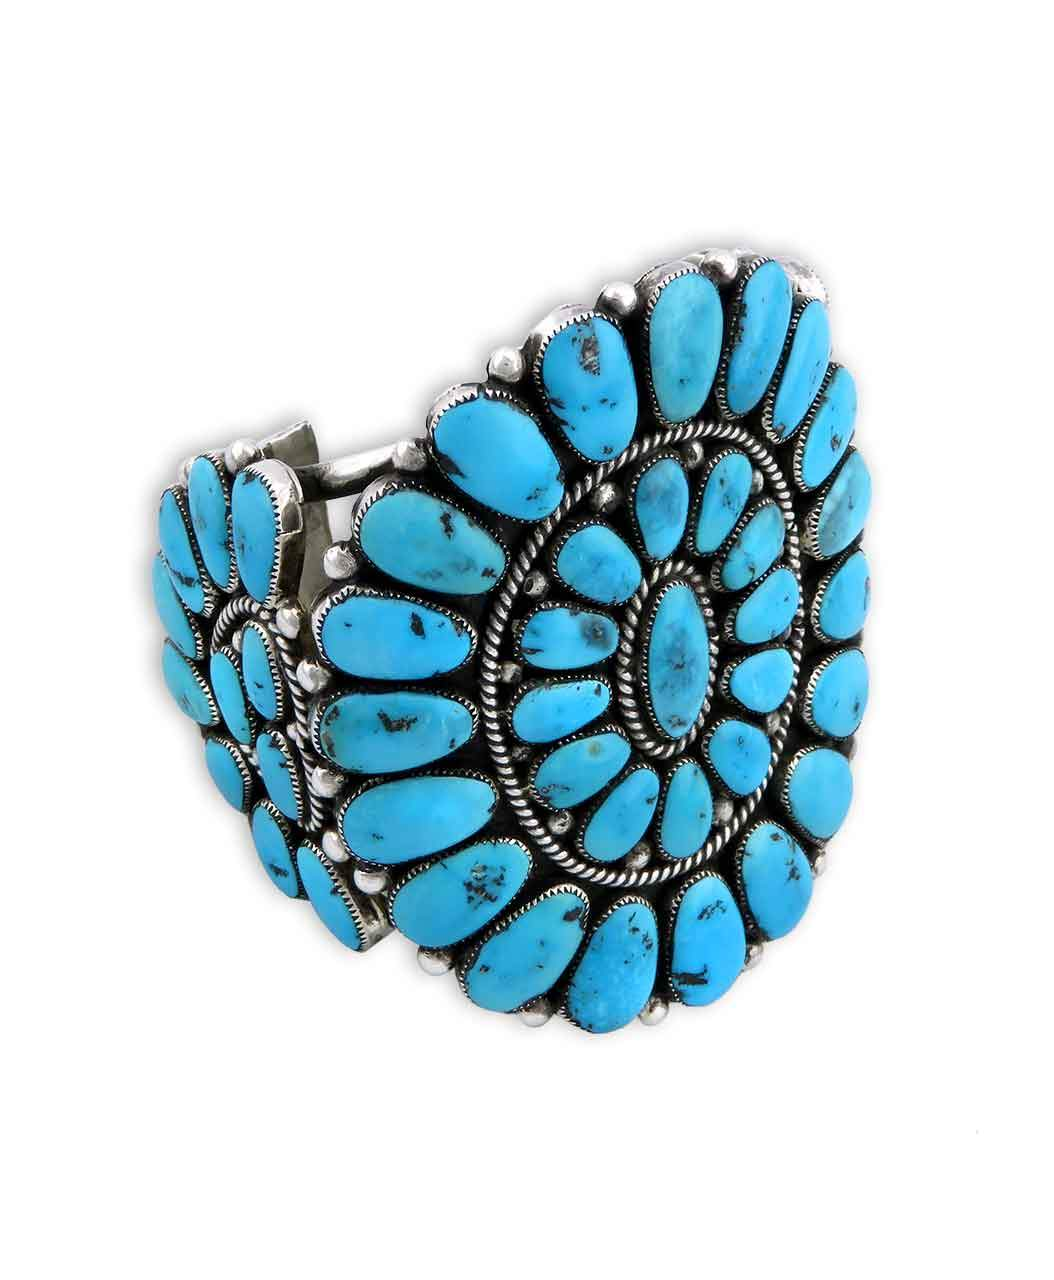 Turquoise Flower Motif Sterling Silver Cuff